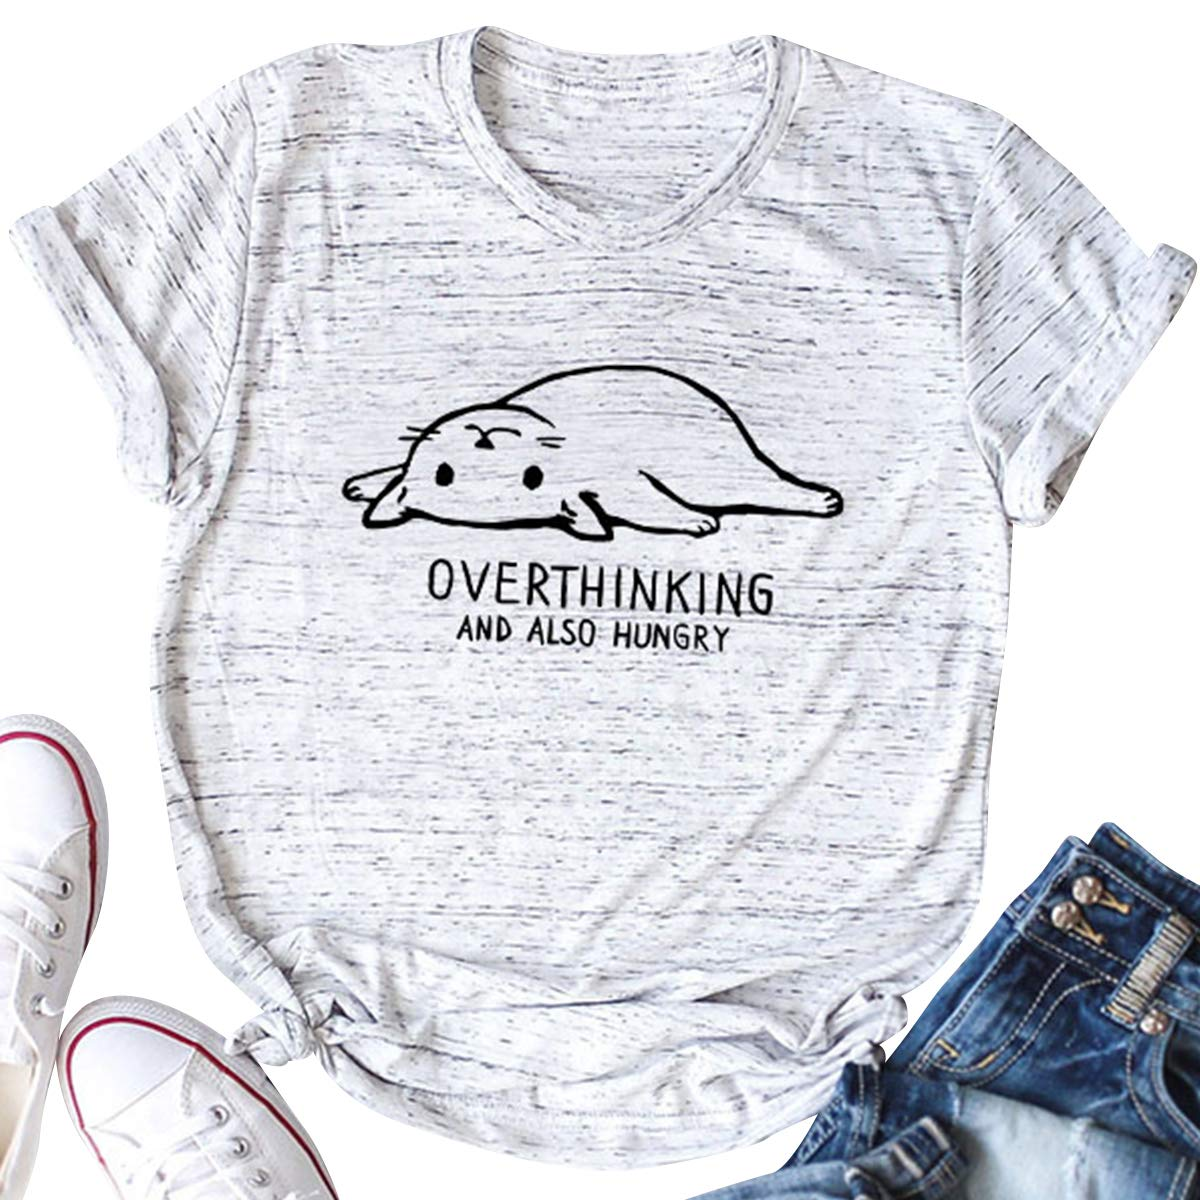 Overthinking and Also Hungry T-Shirts Women Cat Print Funny Graphic Tee